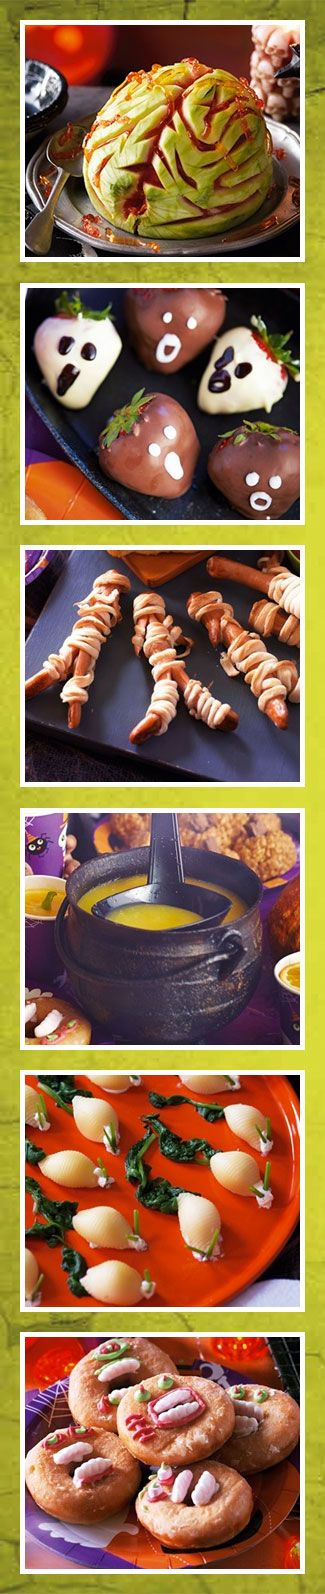 There are loads of fun Halloween recipes on our recipe site!